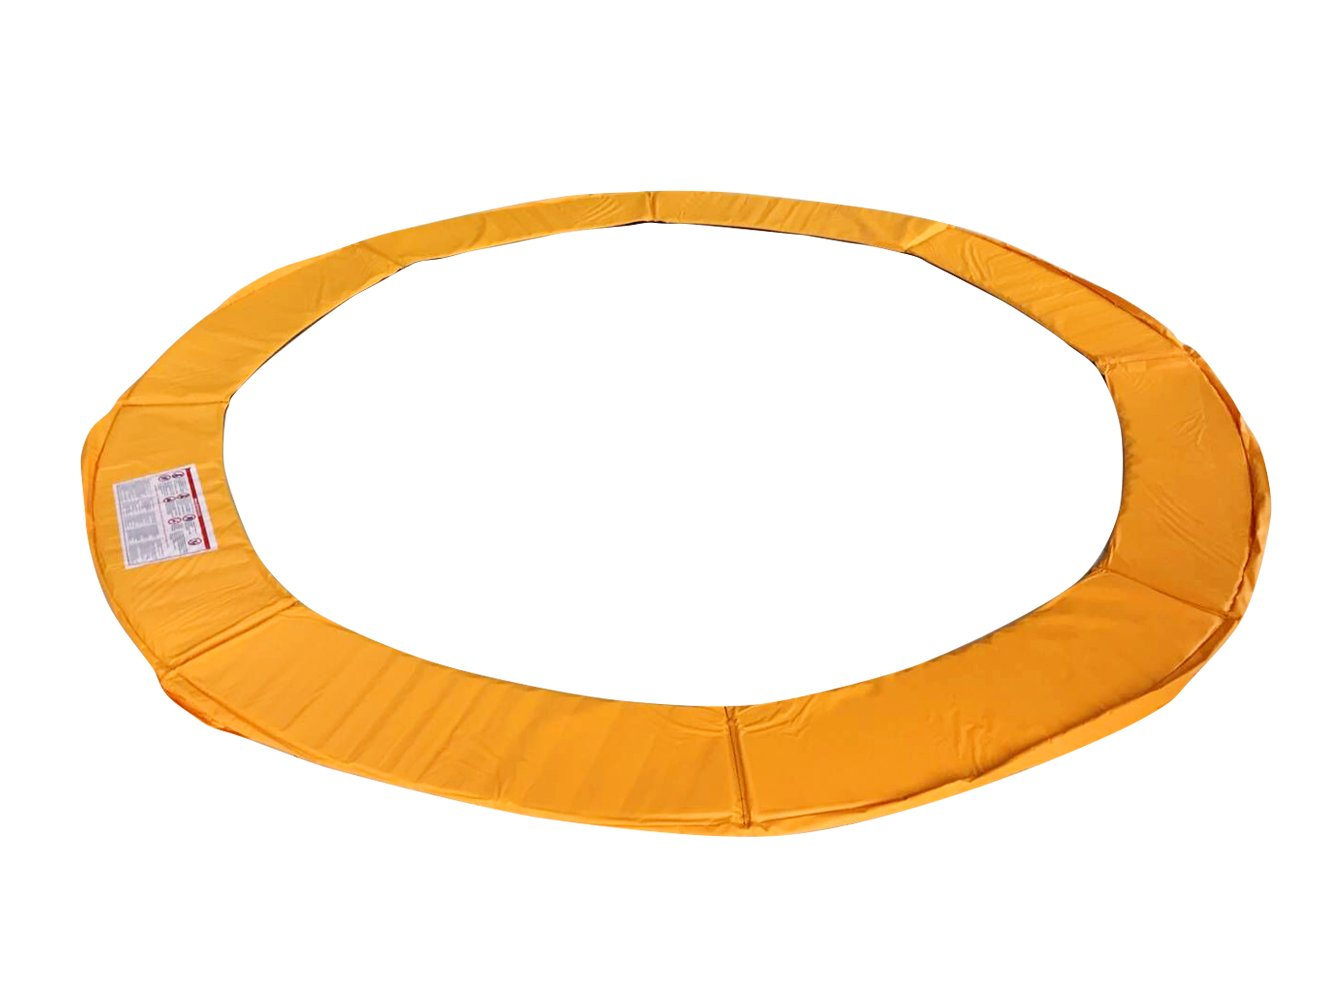 Exacme Trampoline Replacement Safety Pad Frame Spring Orange Color Round Cover 12-16 FT Pad (10ft)